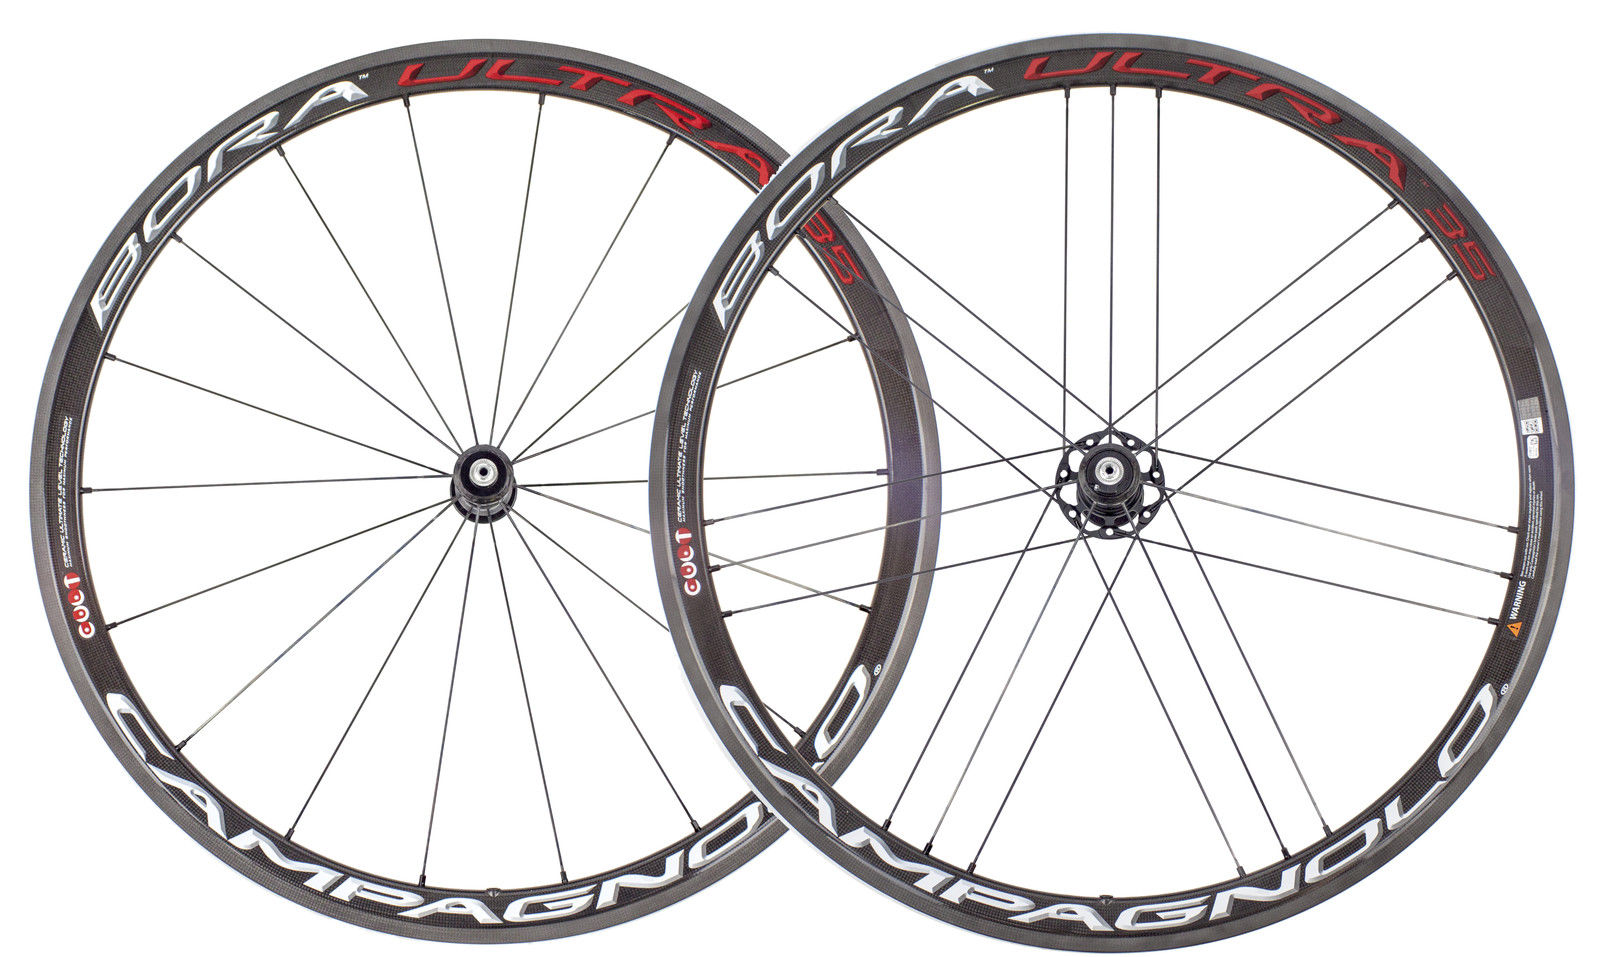 New Campagnolo Bora Ultra 35 Tubular Wheel Set Bright